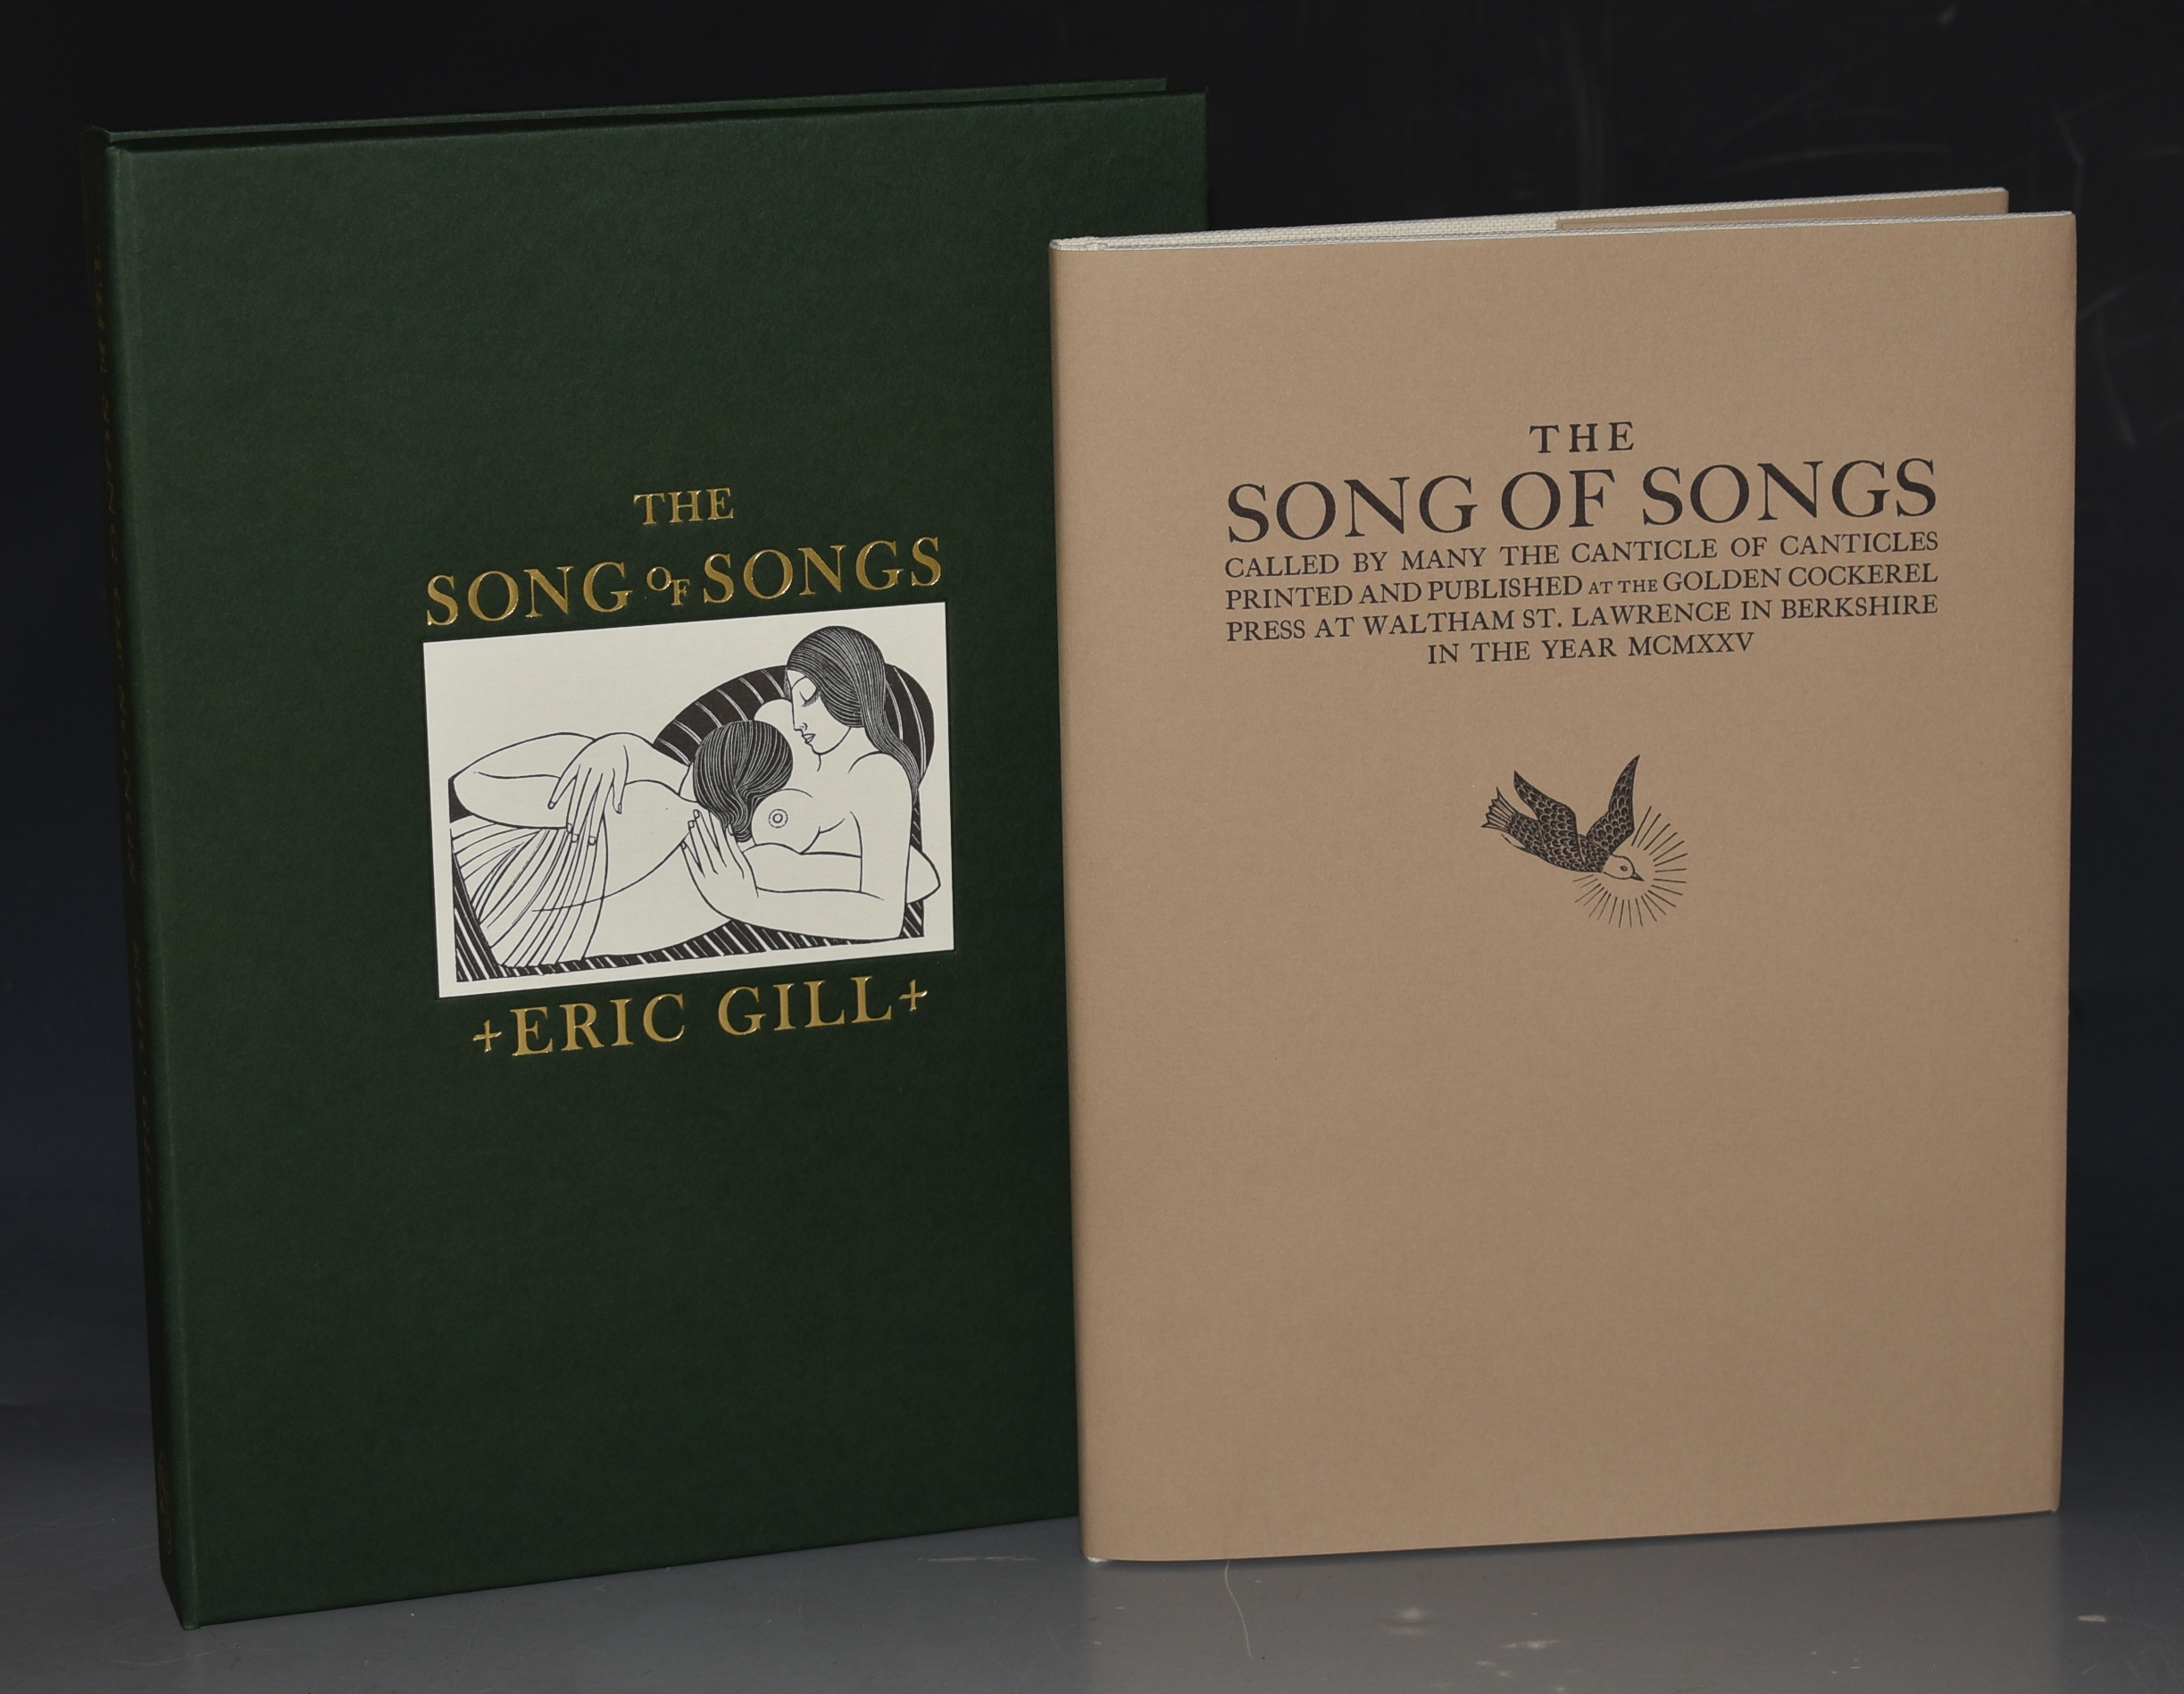 Image for The Songs of Songs Called by many The Canticle of Canticles. Limited Numbered Cased Edition. Facsimile of the 1925 Golden Cockerel Press Edition. With an Essay by Sebastian Carter.